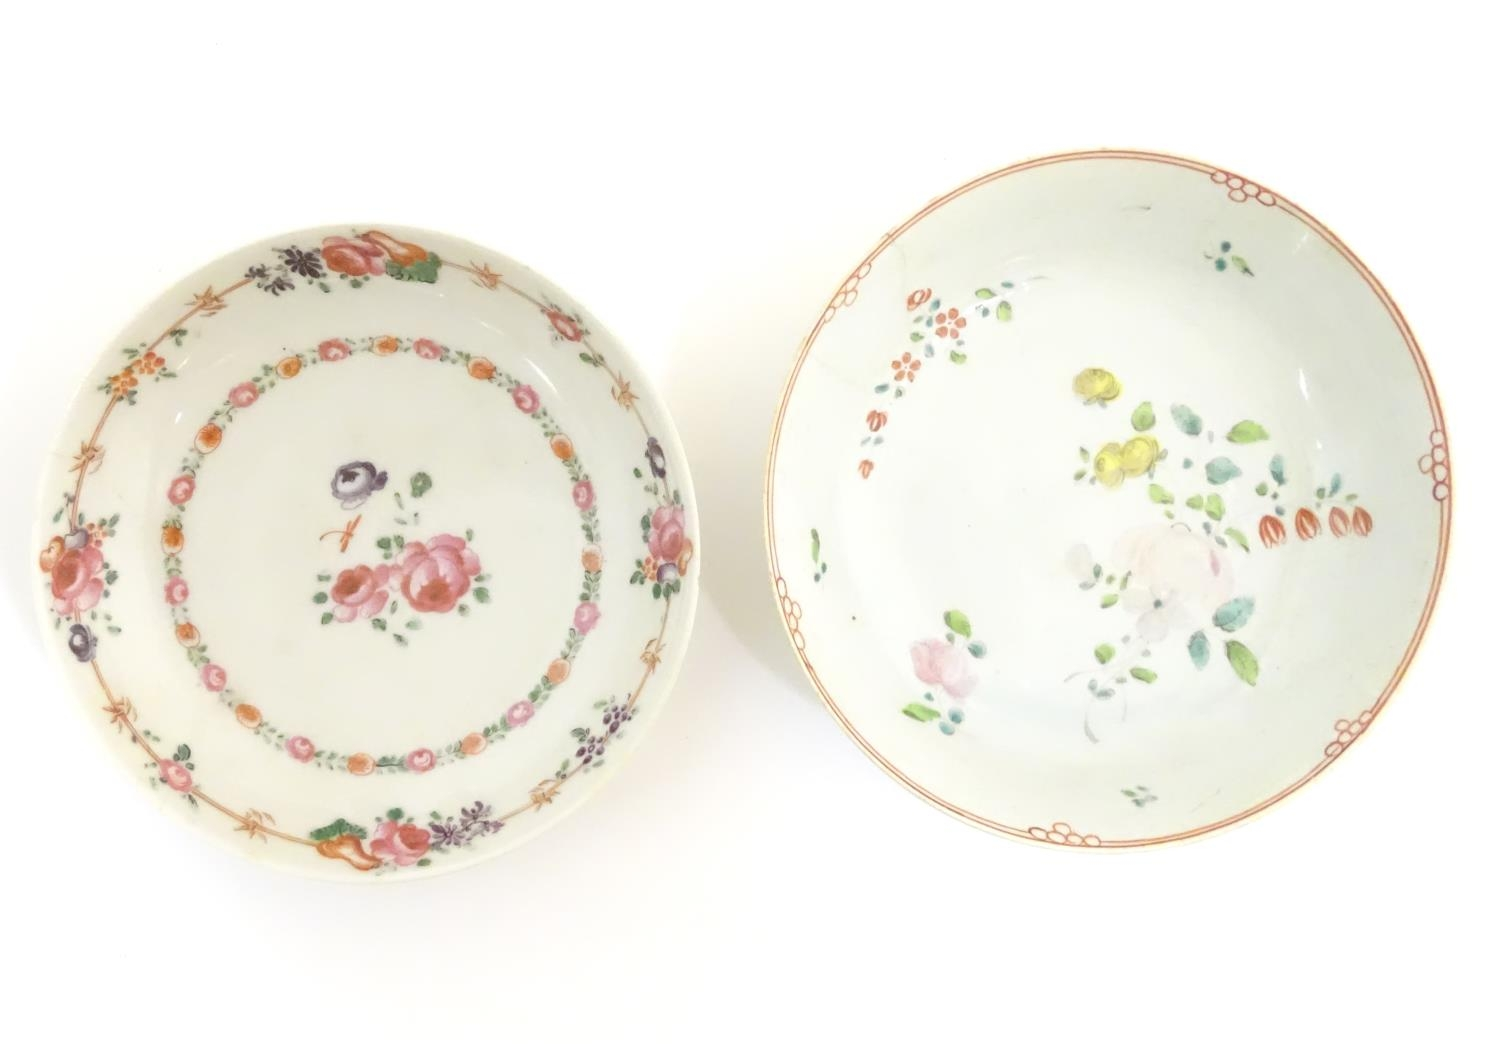 A New Hall style saucer with hand painted floral and foliate detail. Together with another. - Image 3 of 18